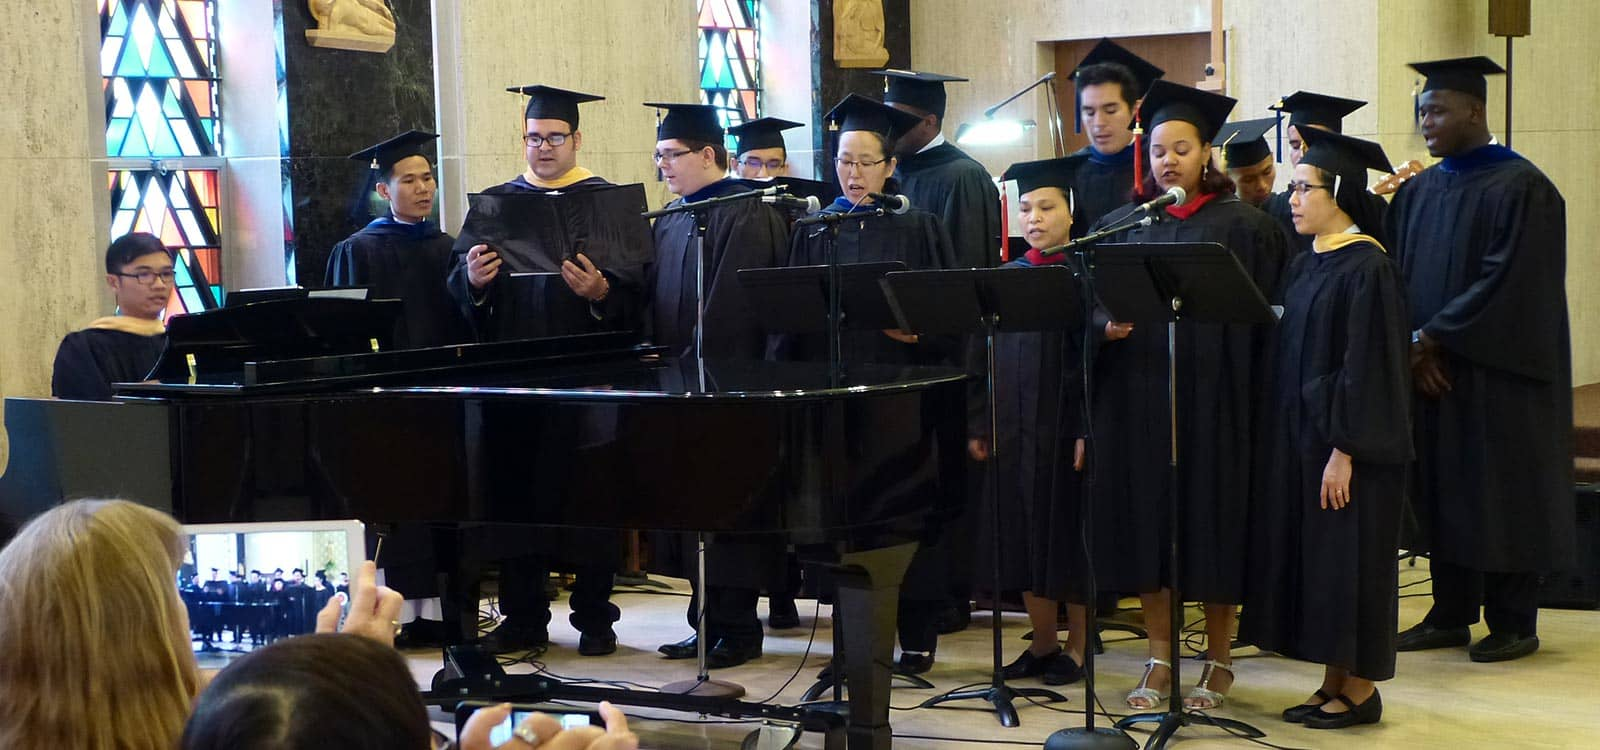 Graduating students singing in choir